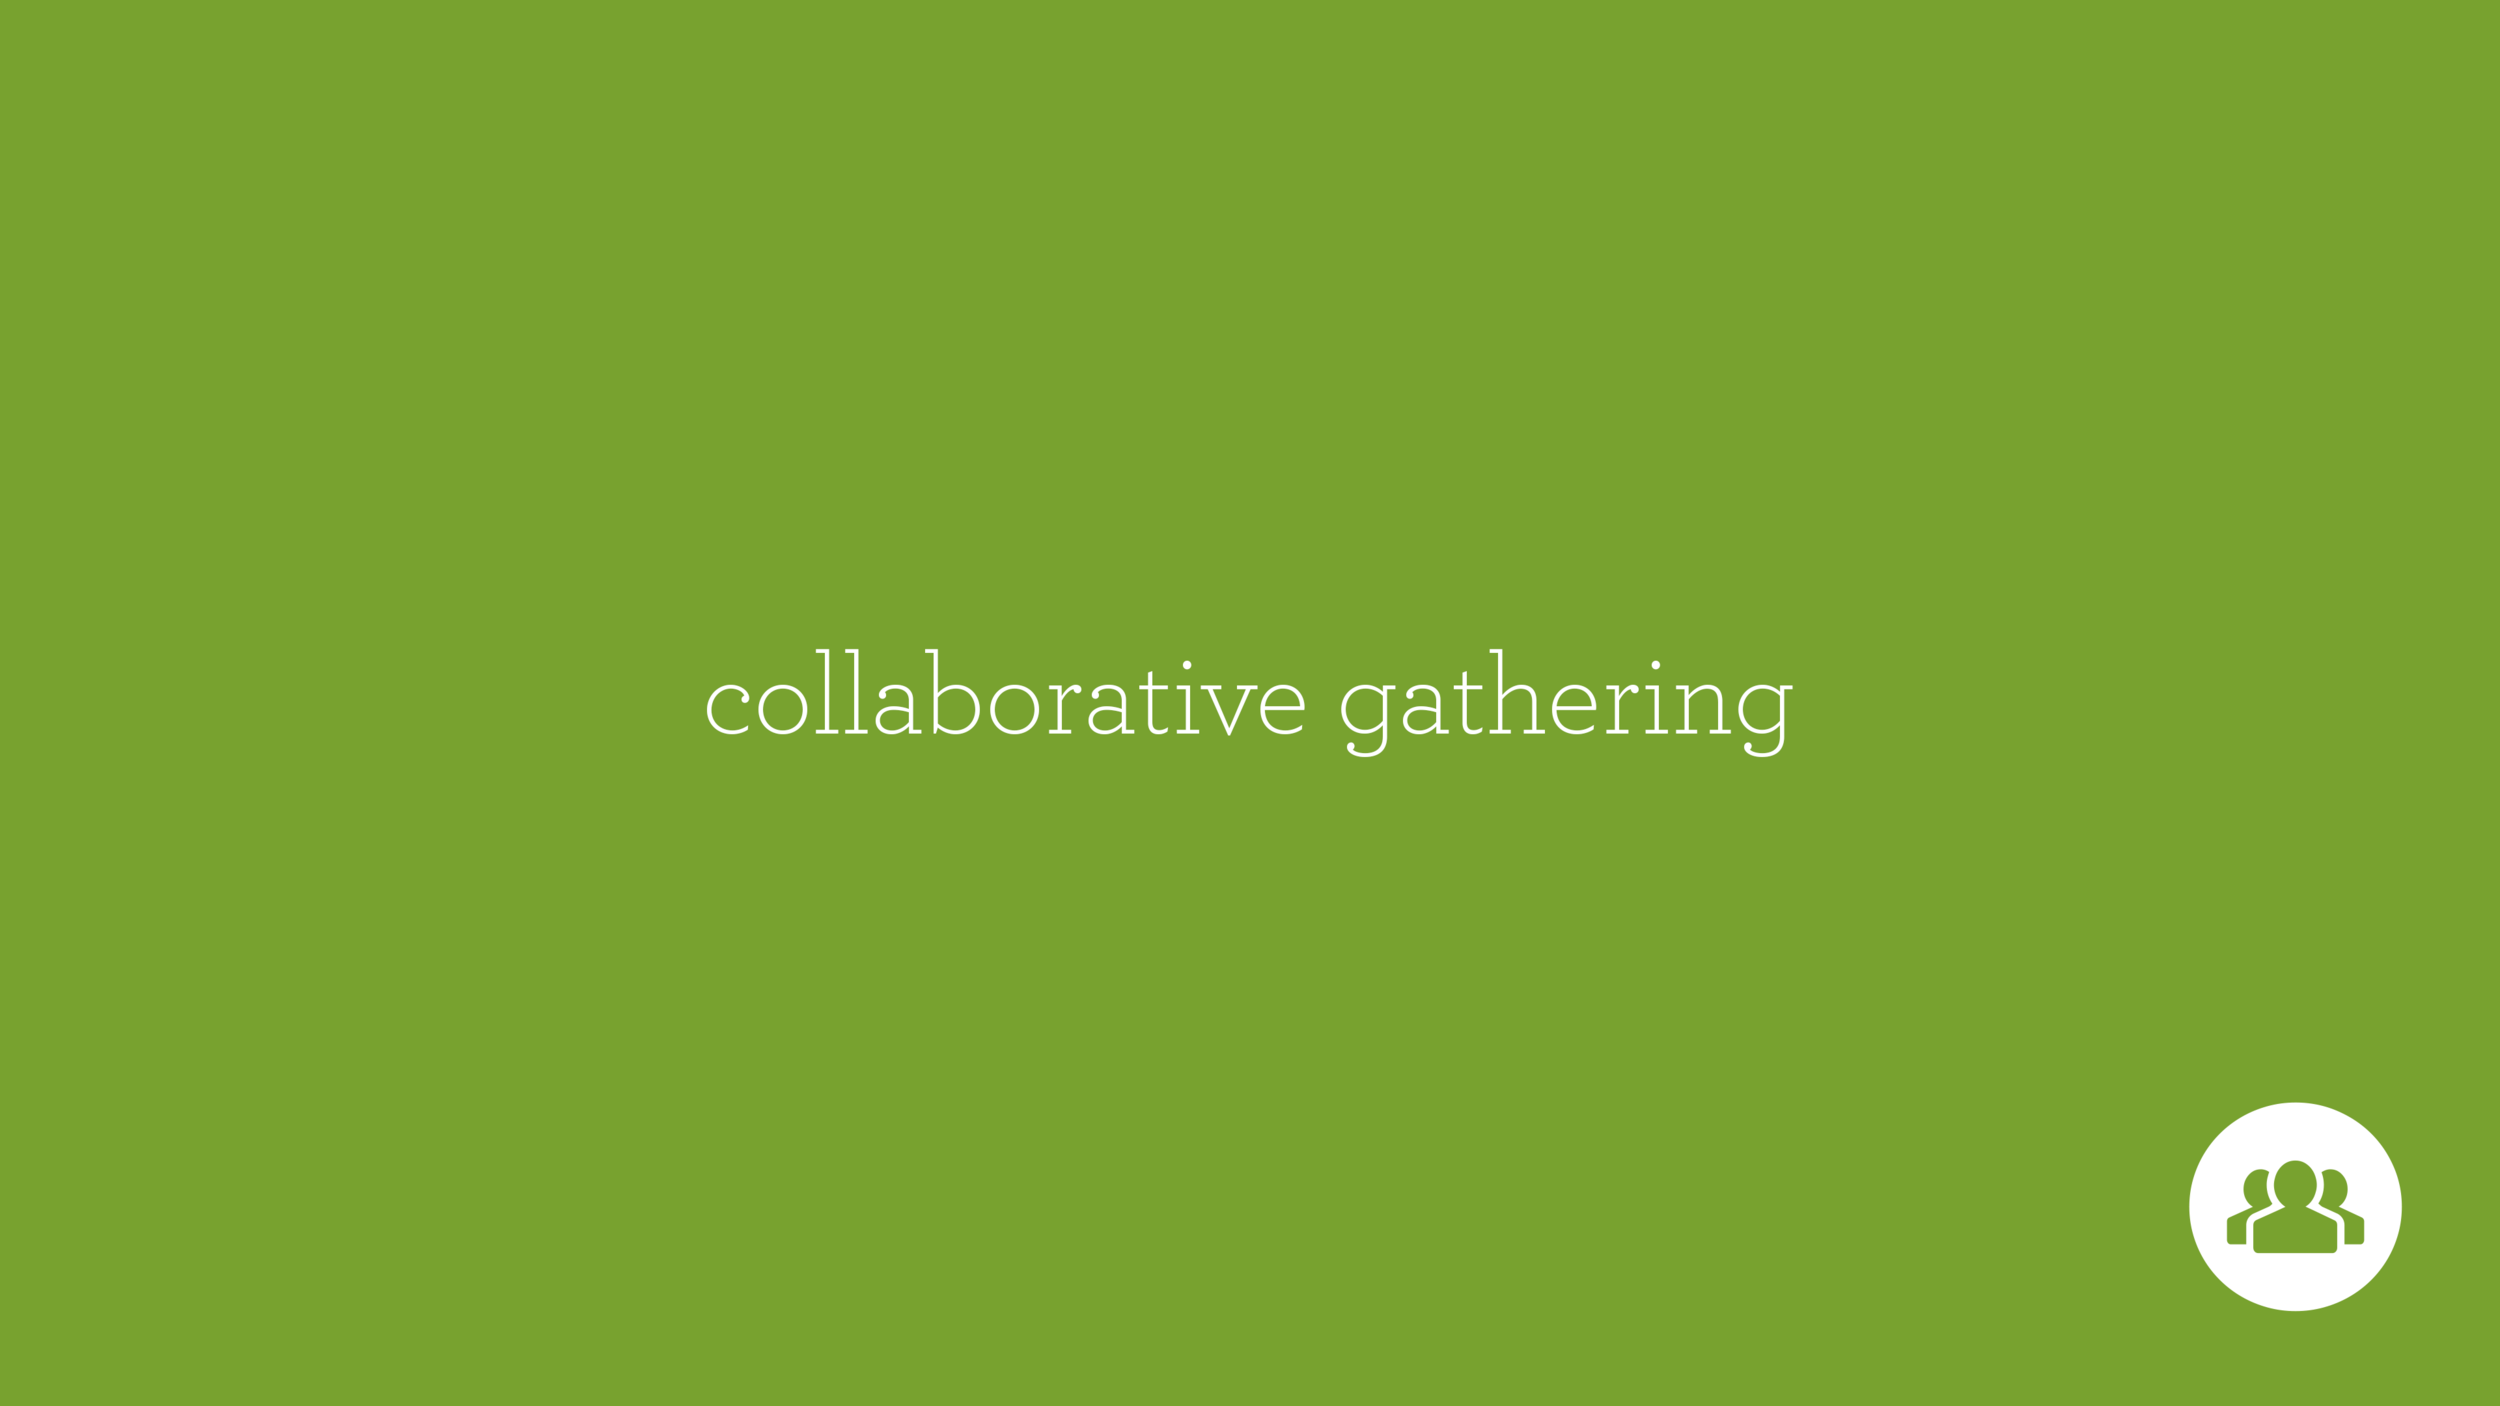 MCLeaderCollaborativeGathering.png